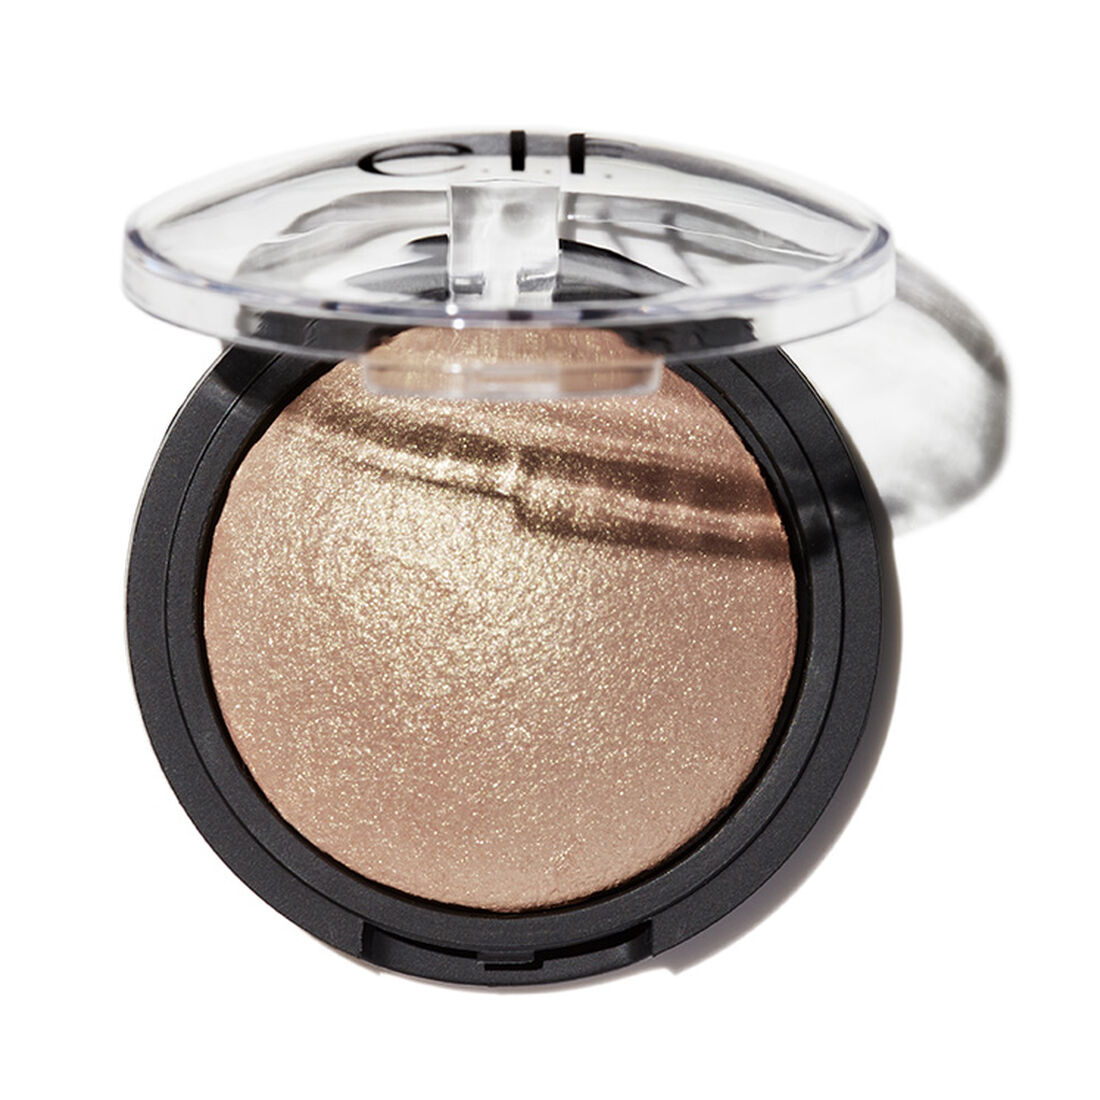 ELF Cosmetics - Baked Highlighter